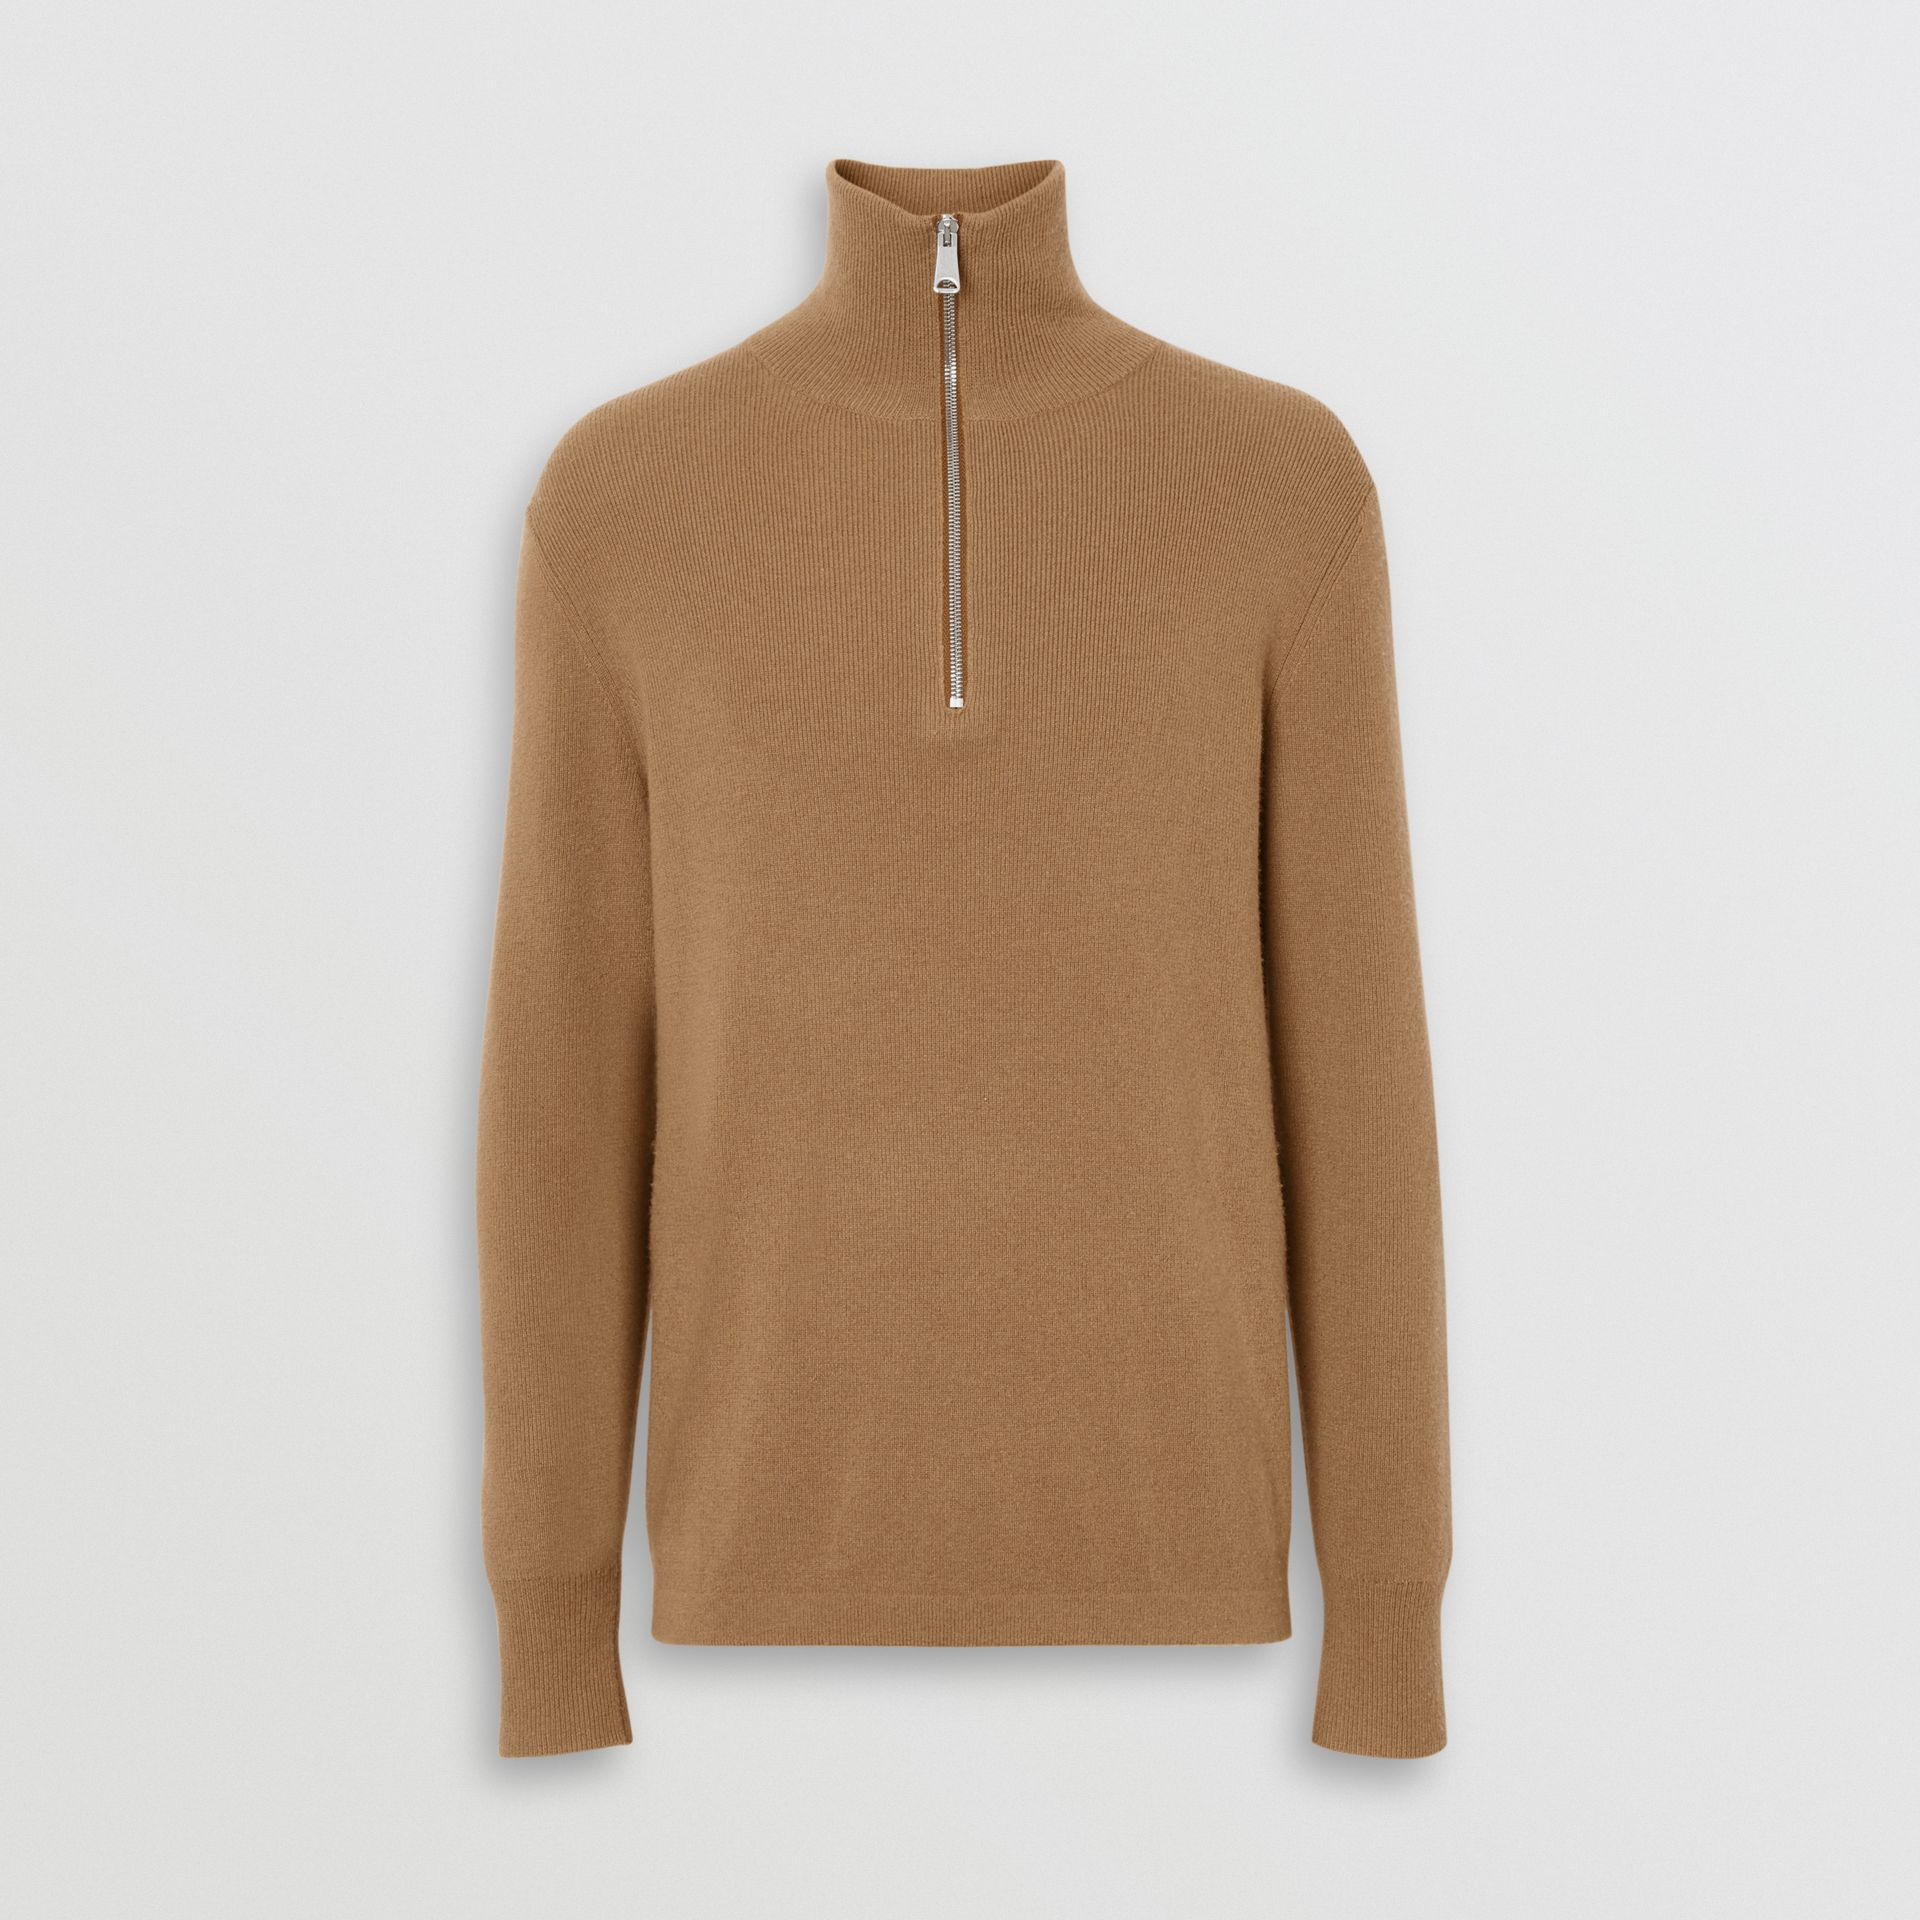 Rib Knit Cashmere Half-zip Sweater in Camel - Men | Burberry United States - gallery image 3